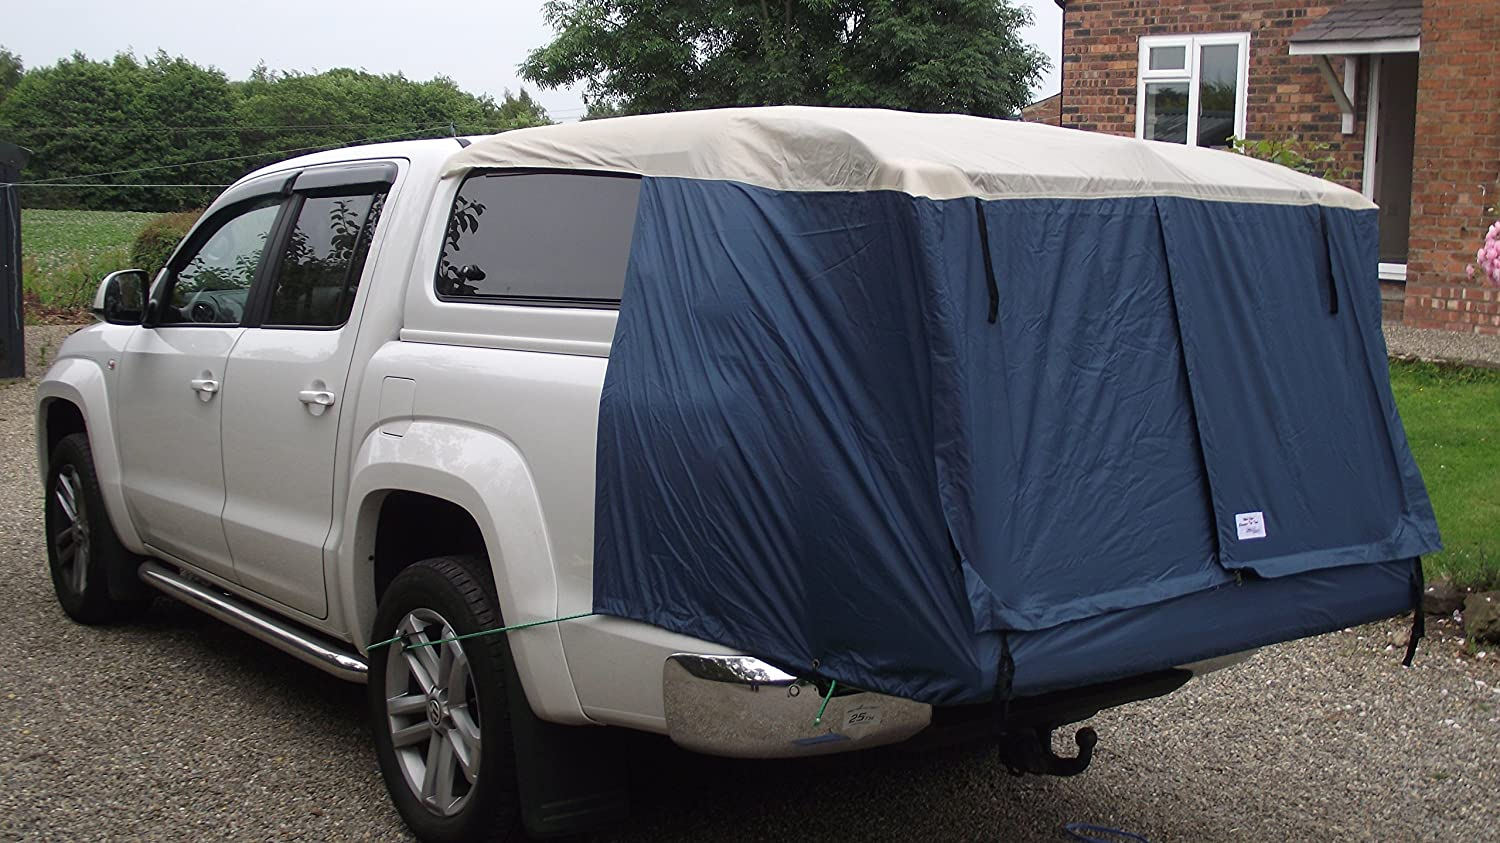 51.18✕62.99✕39.37inch Waterproof Universal Self-driving Car Tabernacle HJUI Truck Tent Durable And Strong Large Space Pickup Truck Tailgate Tent Tailgate Shade Awning Tent